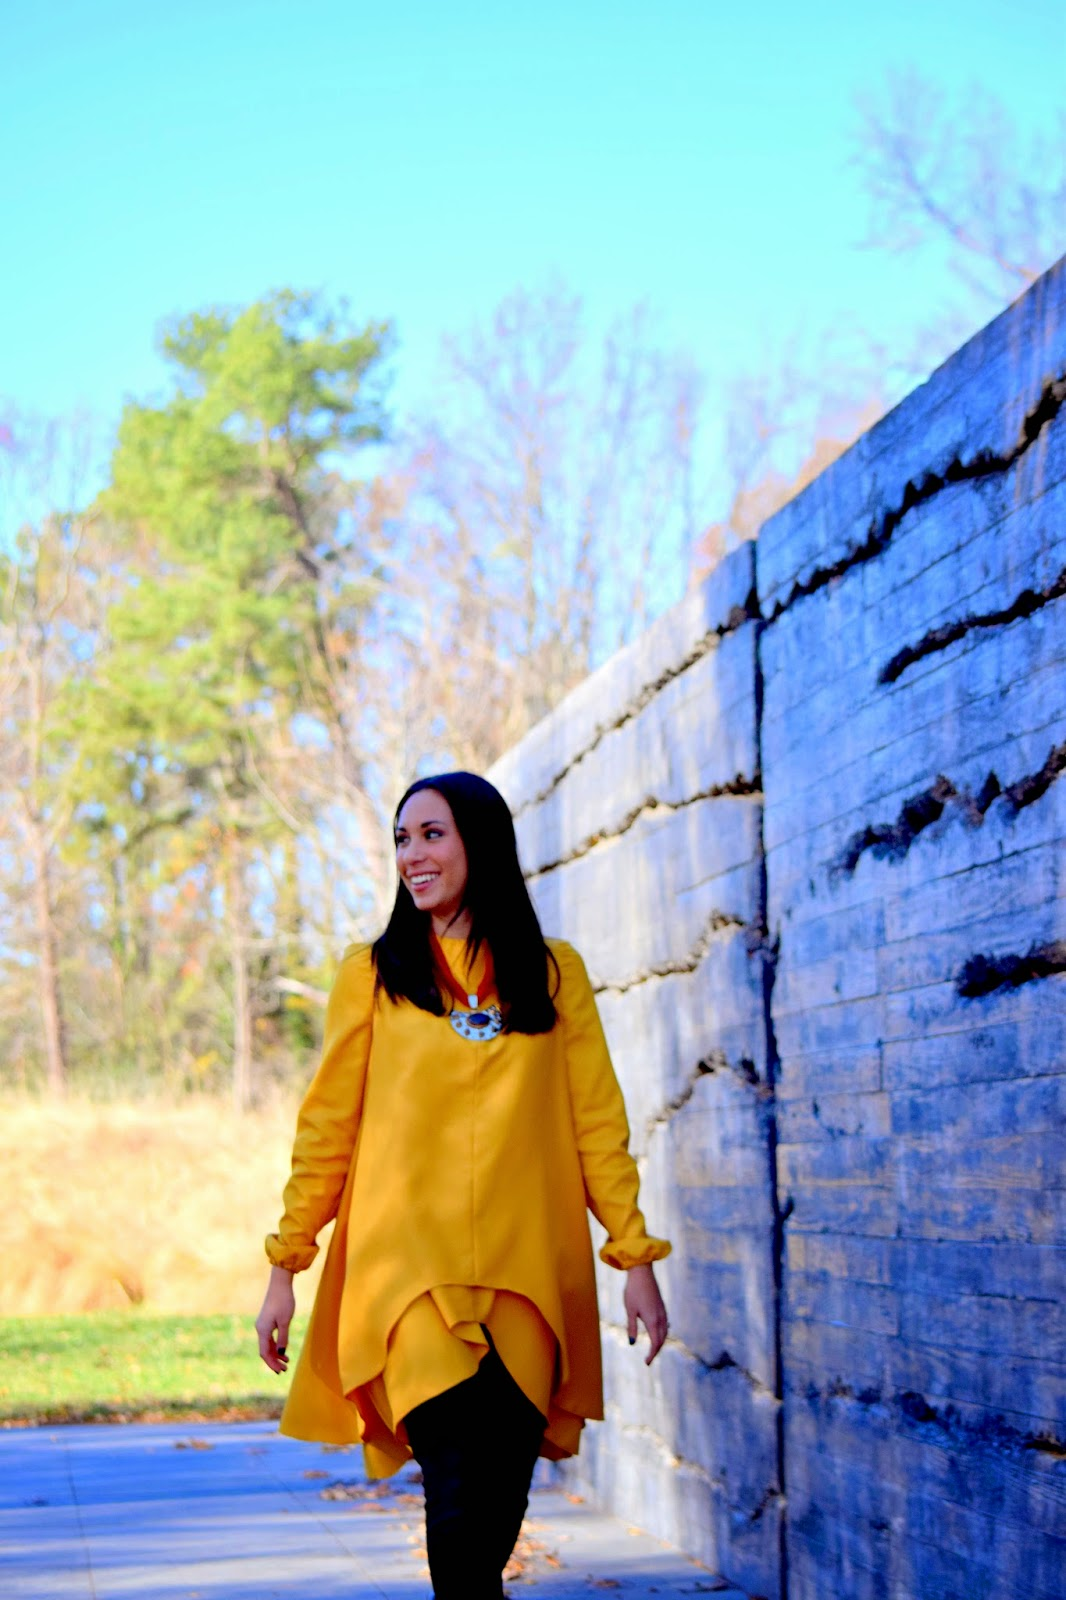 Mel in Chanel, Chanel, Madewell, booties, fashion, Morocco, moroccan, fashion design, fashionSPARK, blogger, fashion bloger, NCMA, art, art museum, Raleigh, Raleigh blogger